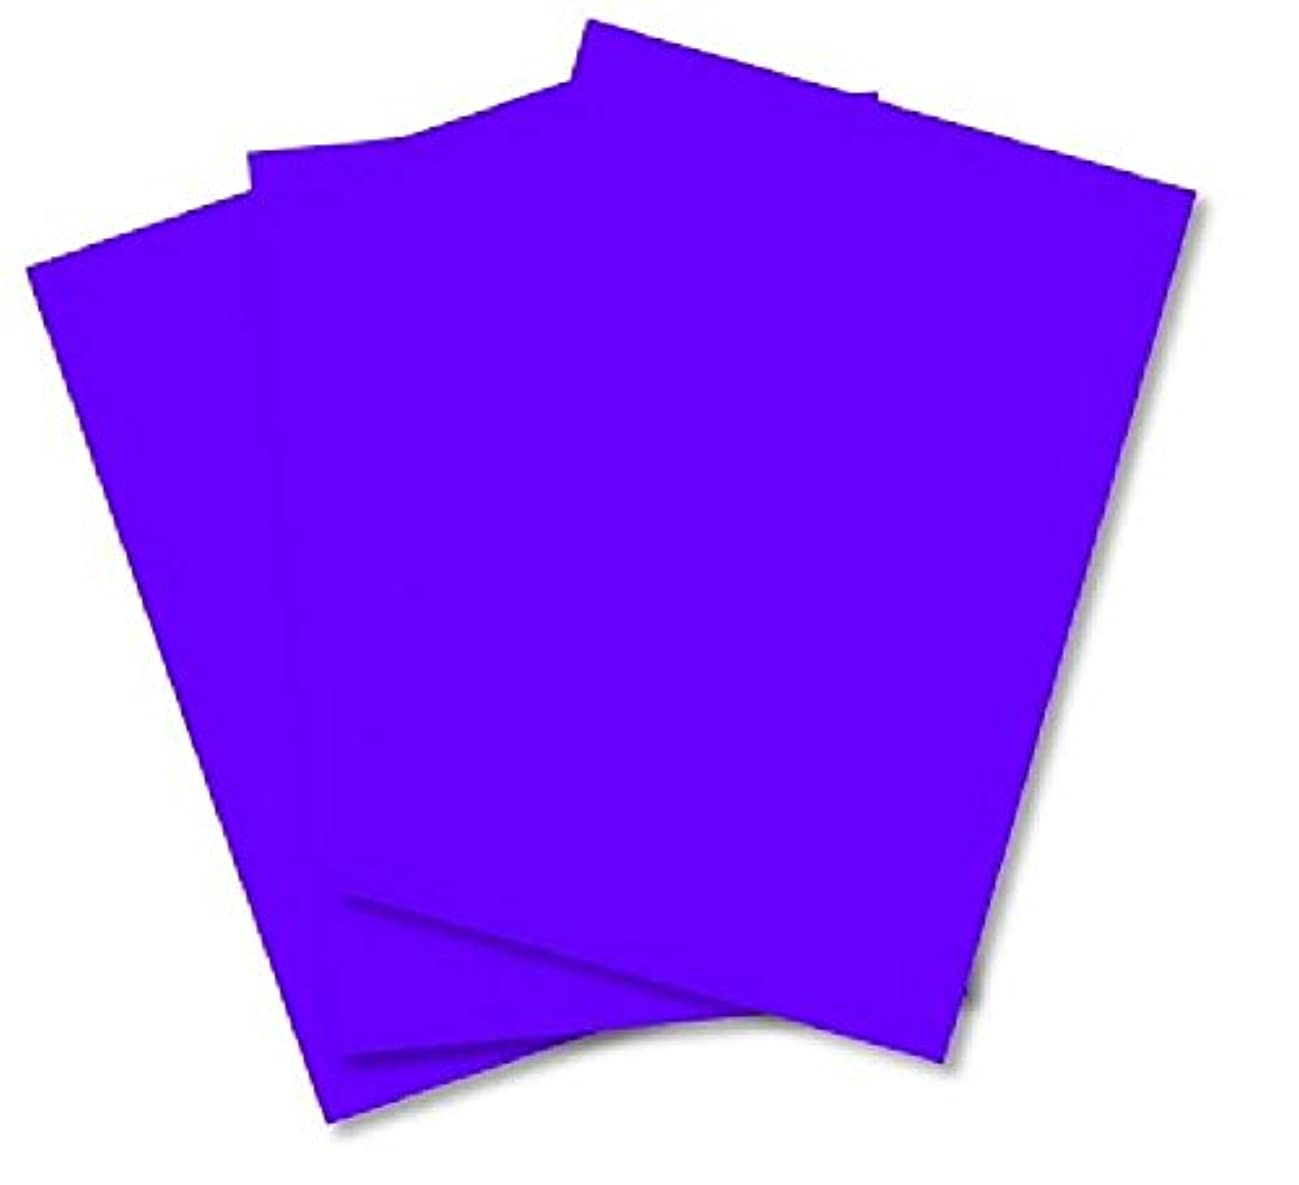 House of Card & Paper A4 210 x 297 mm 80 GSM Smooth Calendared Paper - Purple (Pack of 100 Sheets)